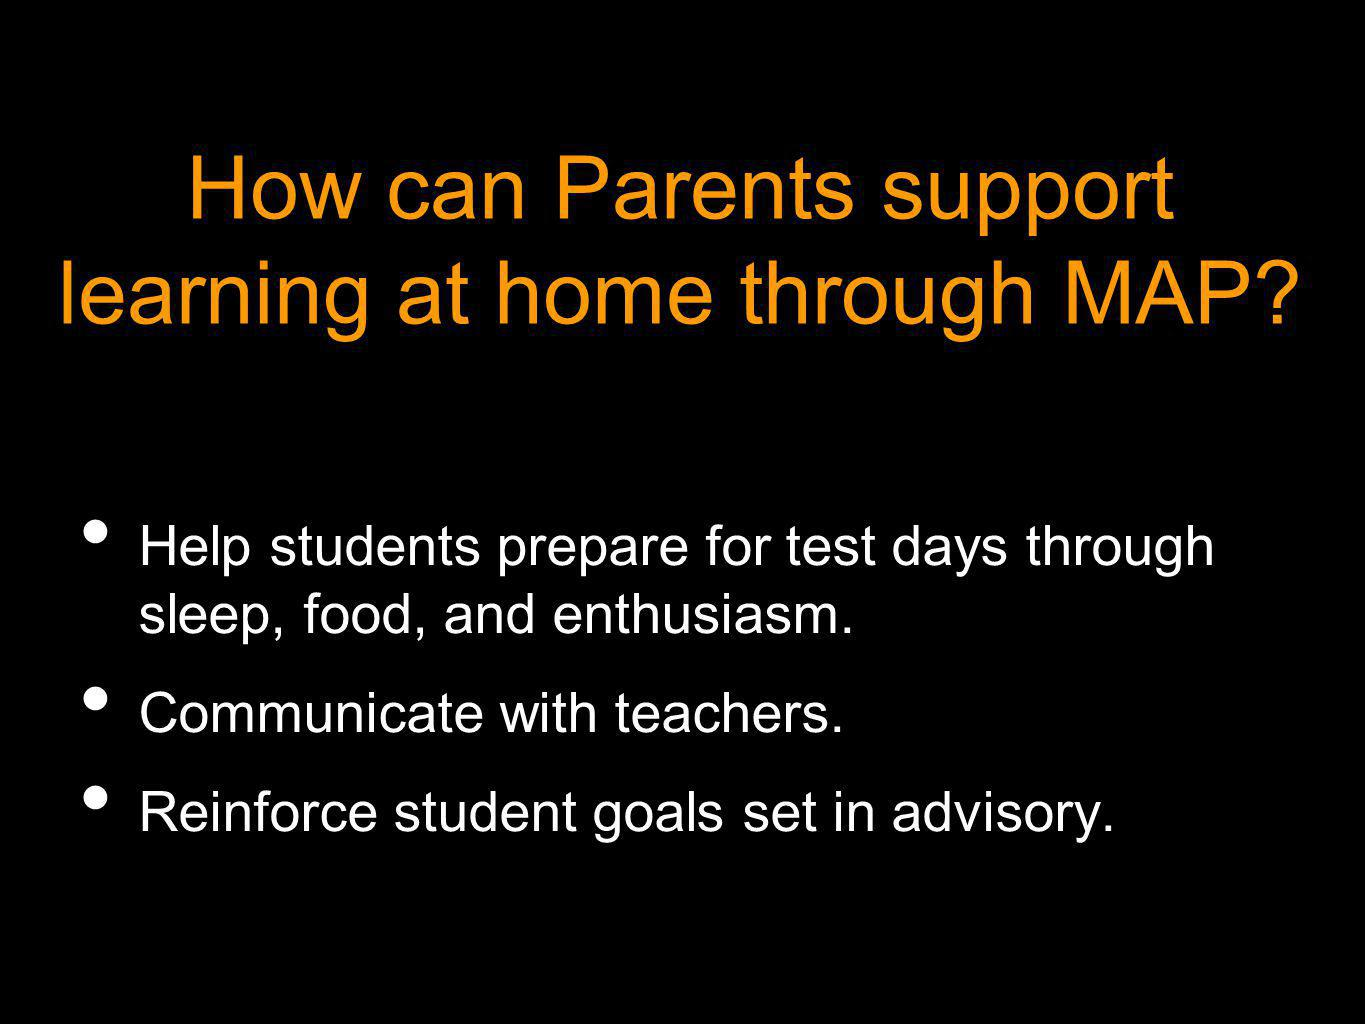 How can Parents support learning at home through MAP